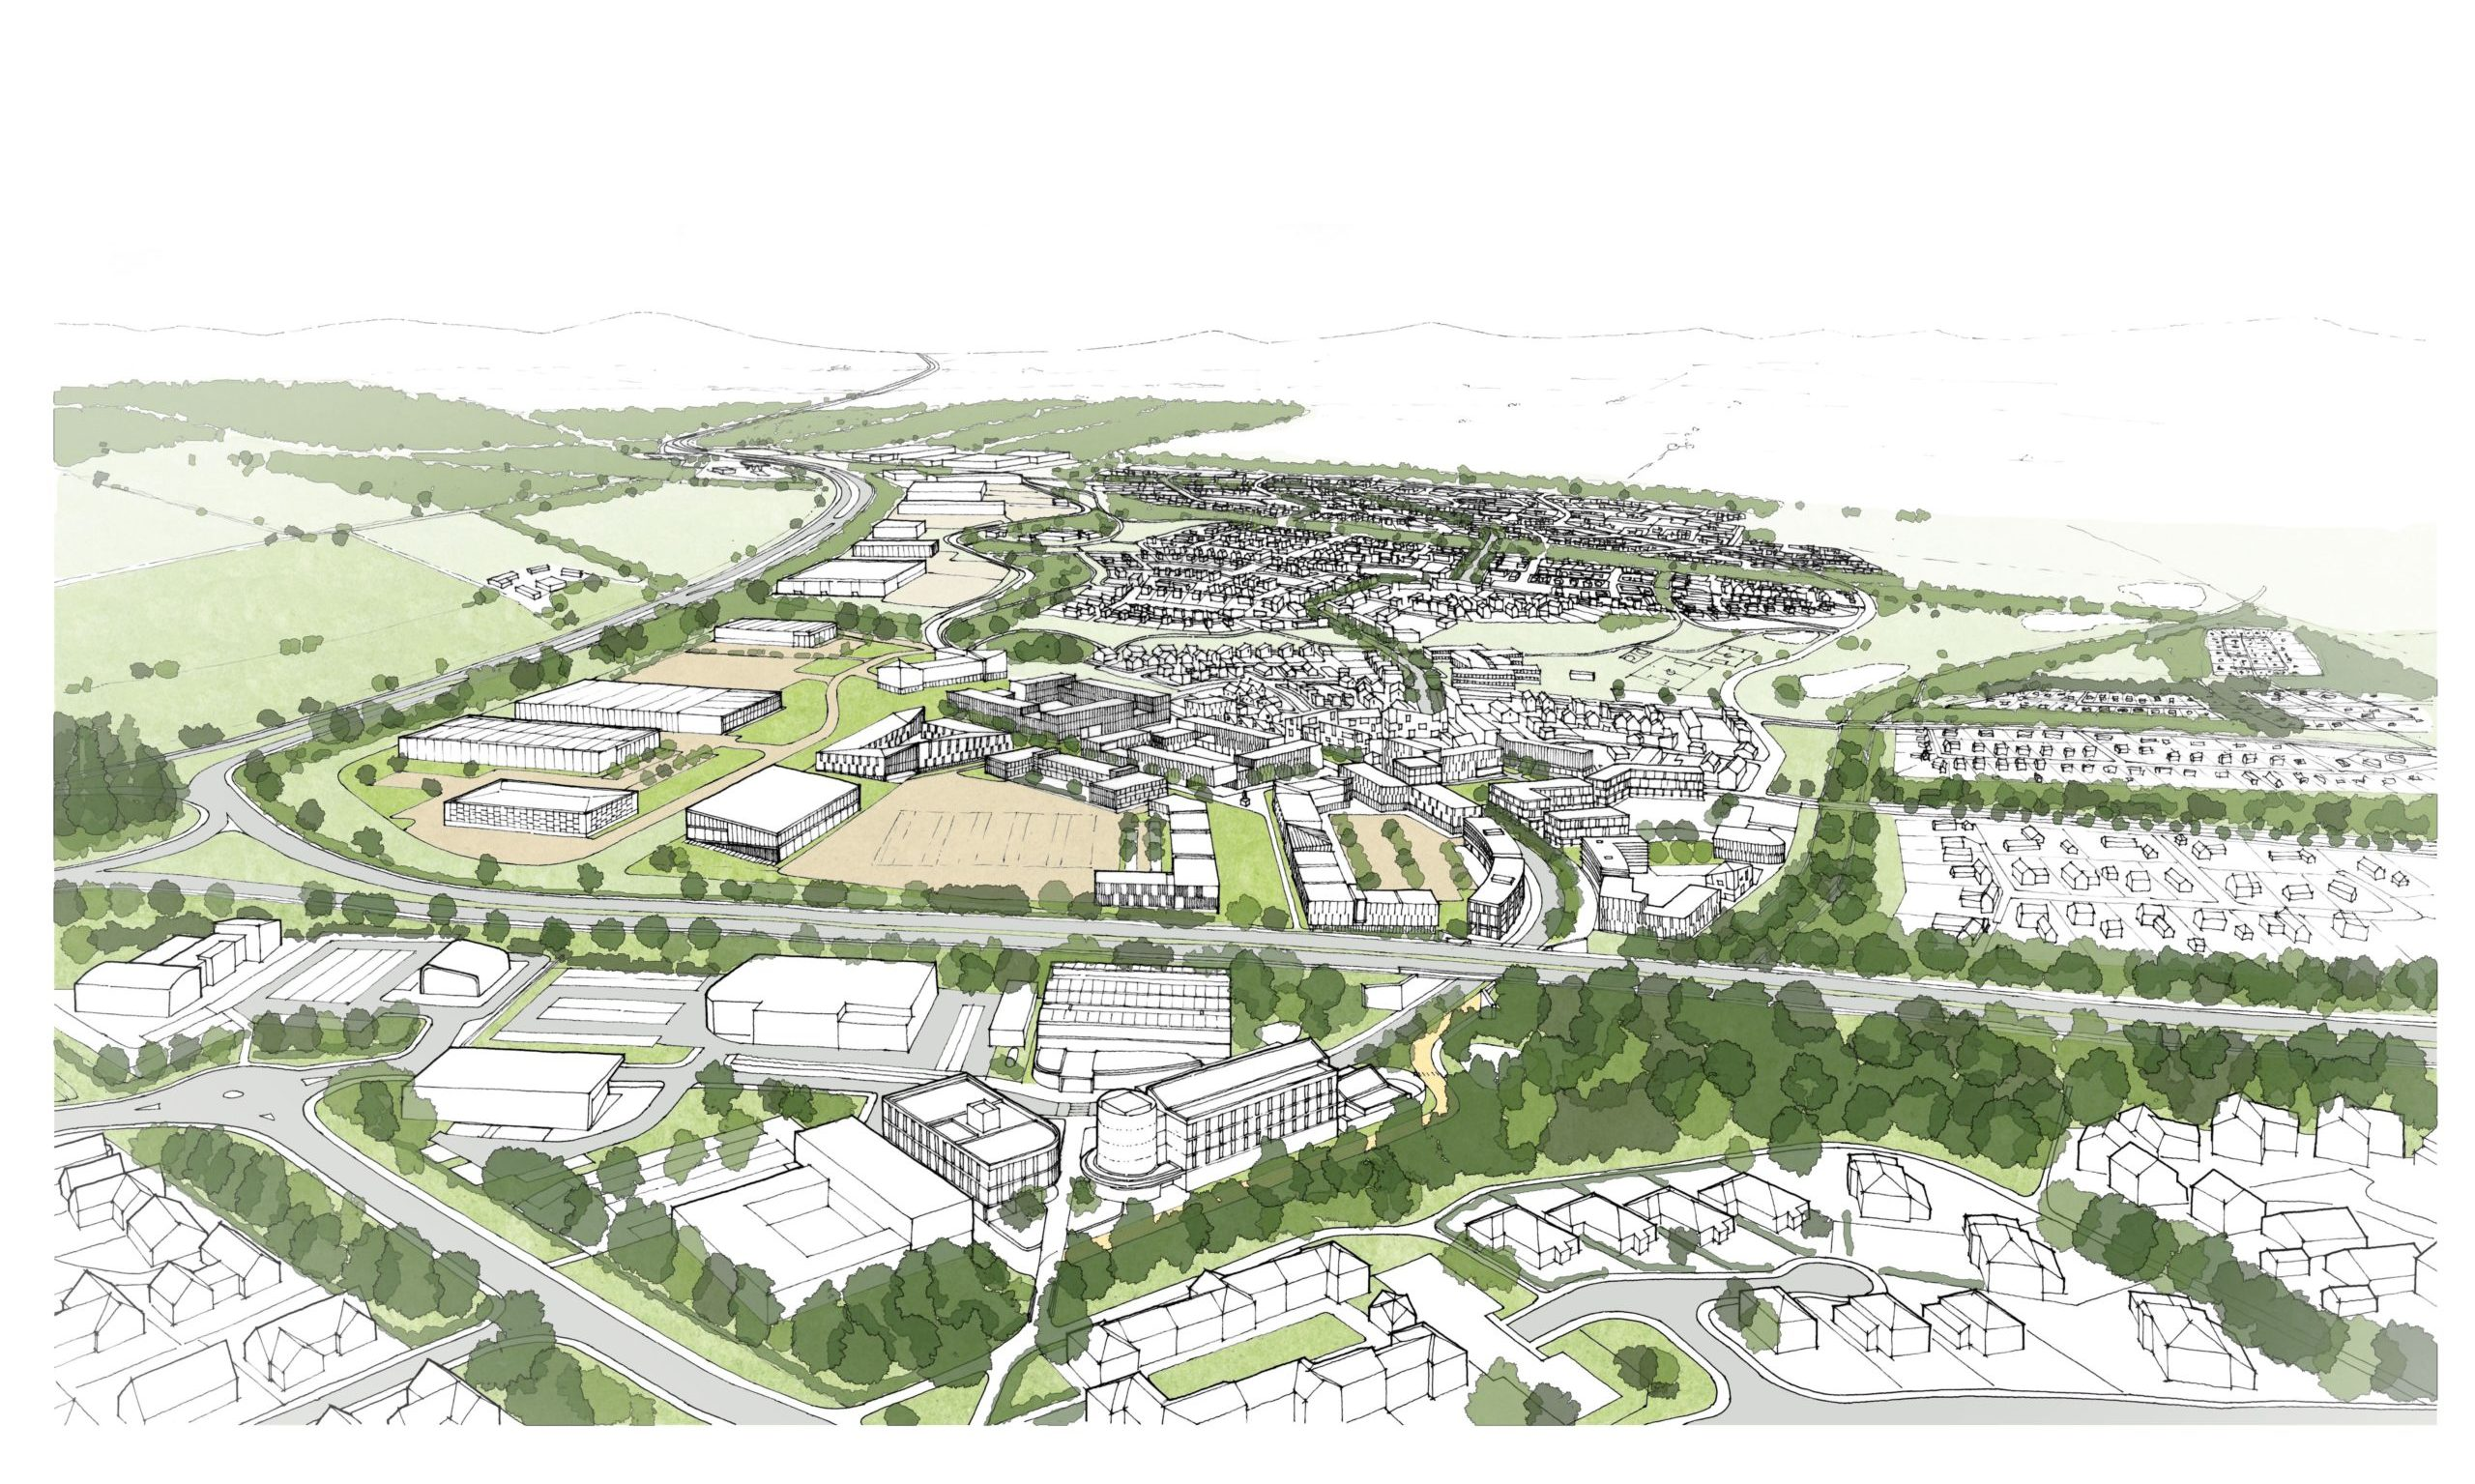 A birds-eye view of the new Perth West project